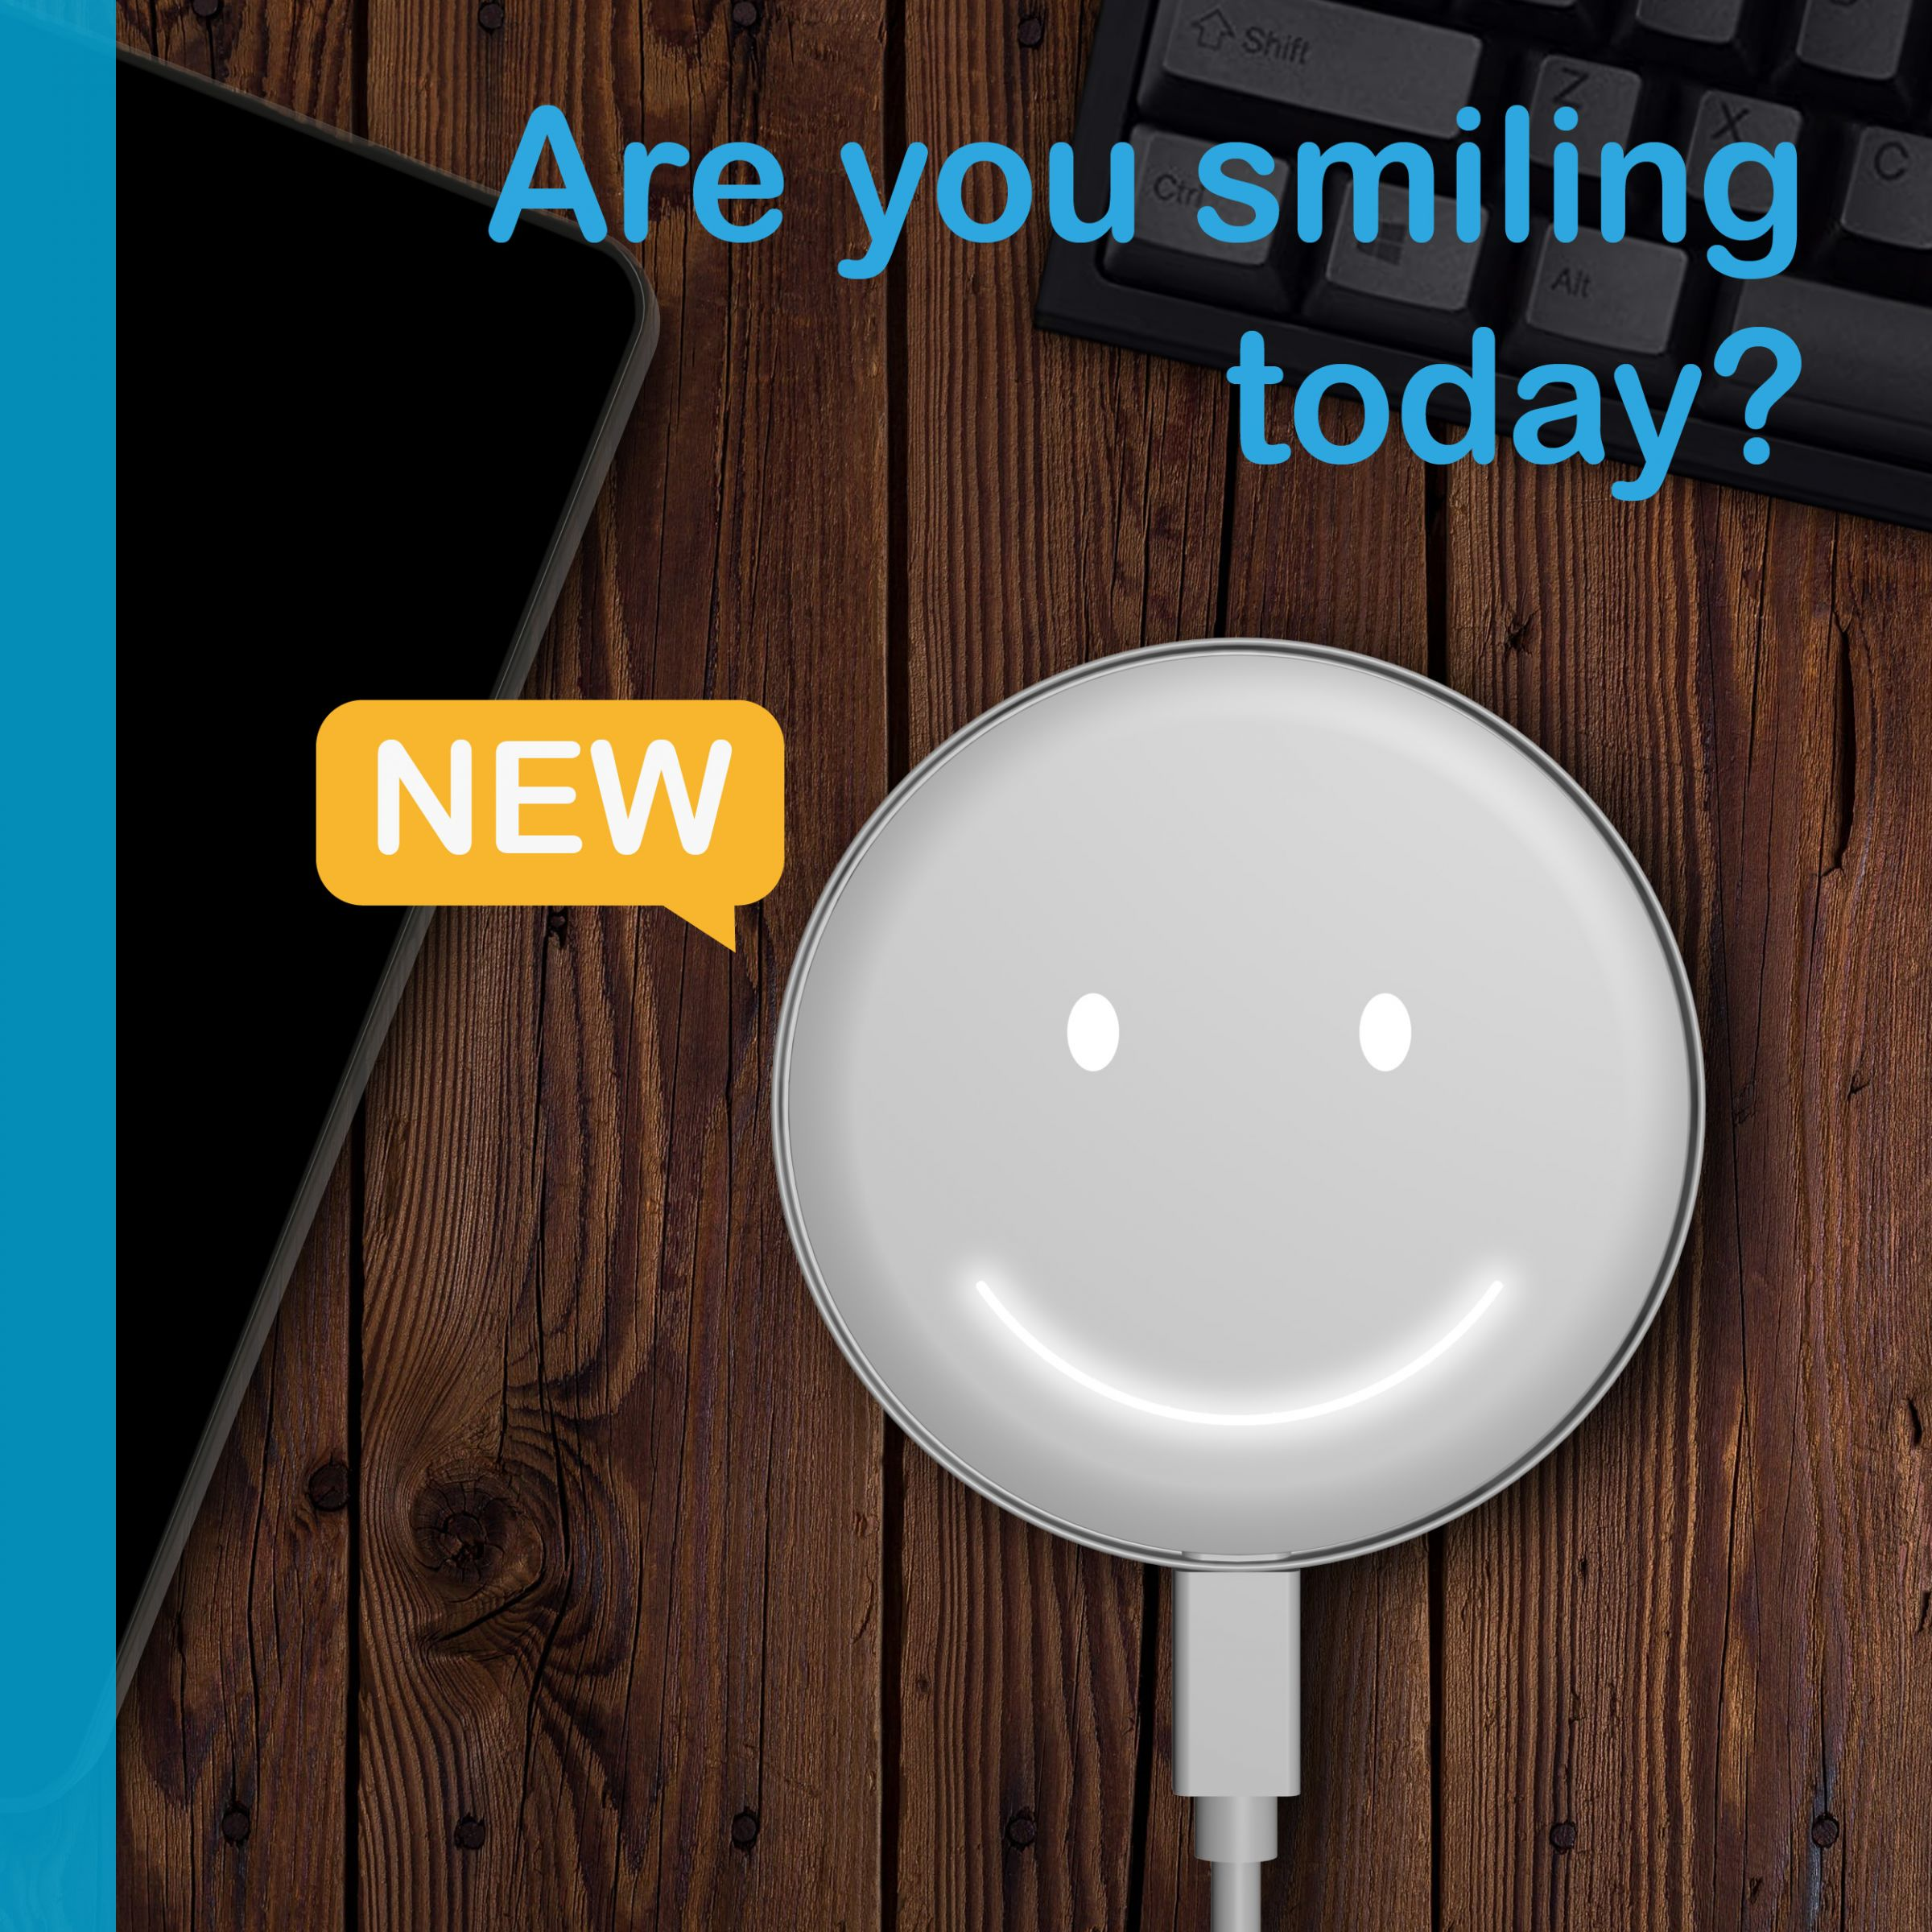 User-Interaction Smiley Wireless Charger with powered 15W - User-Interaction Smiley Wireless Charger